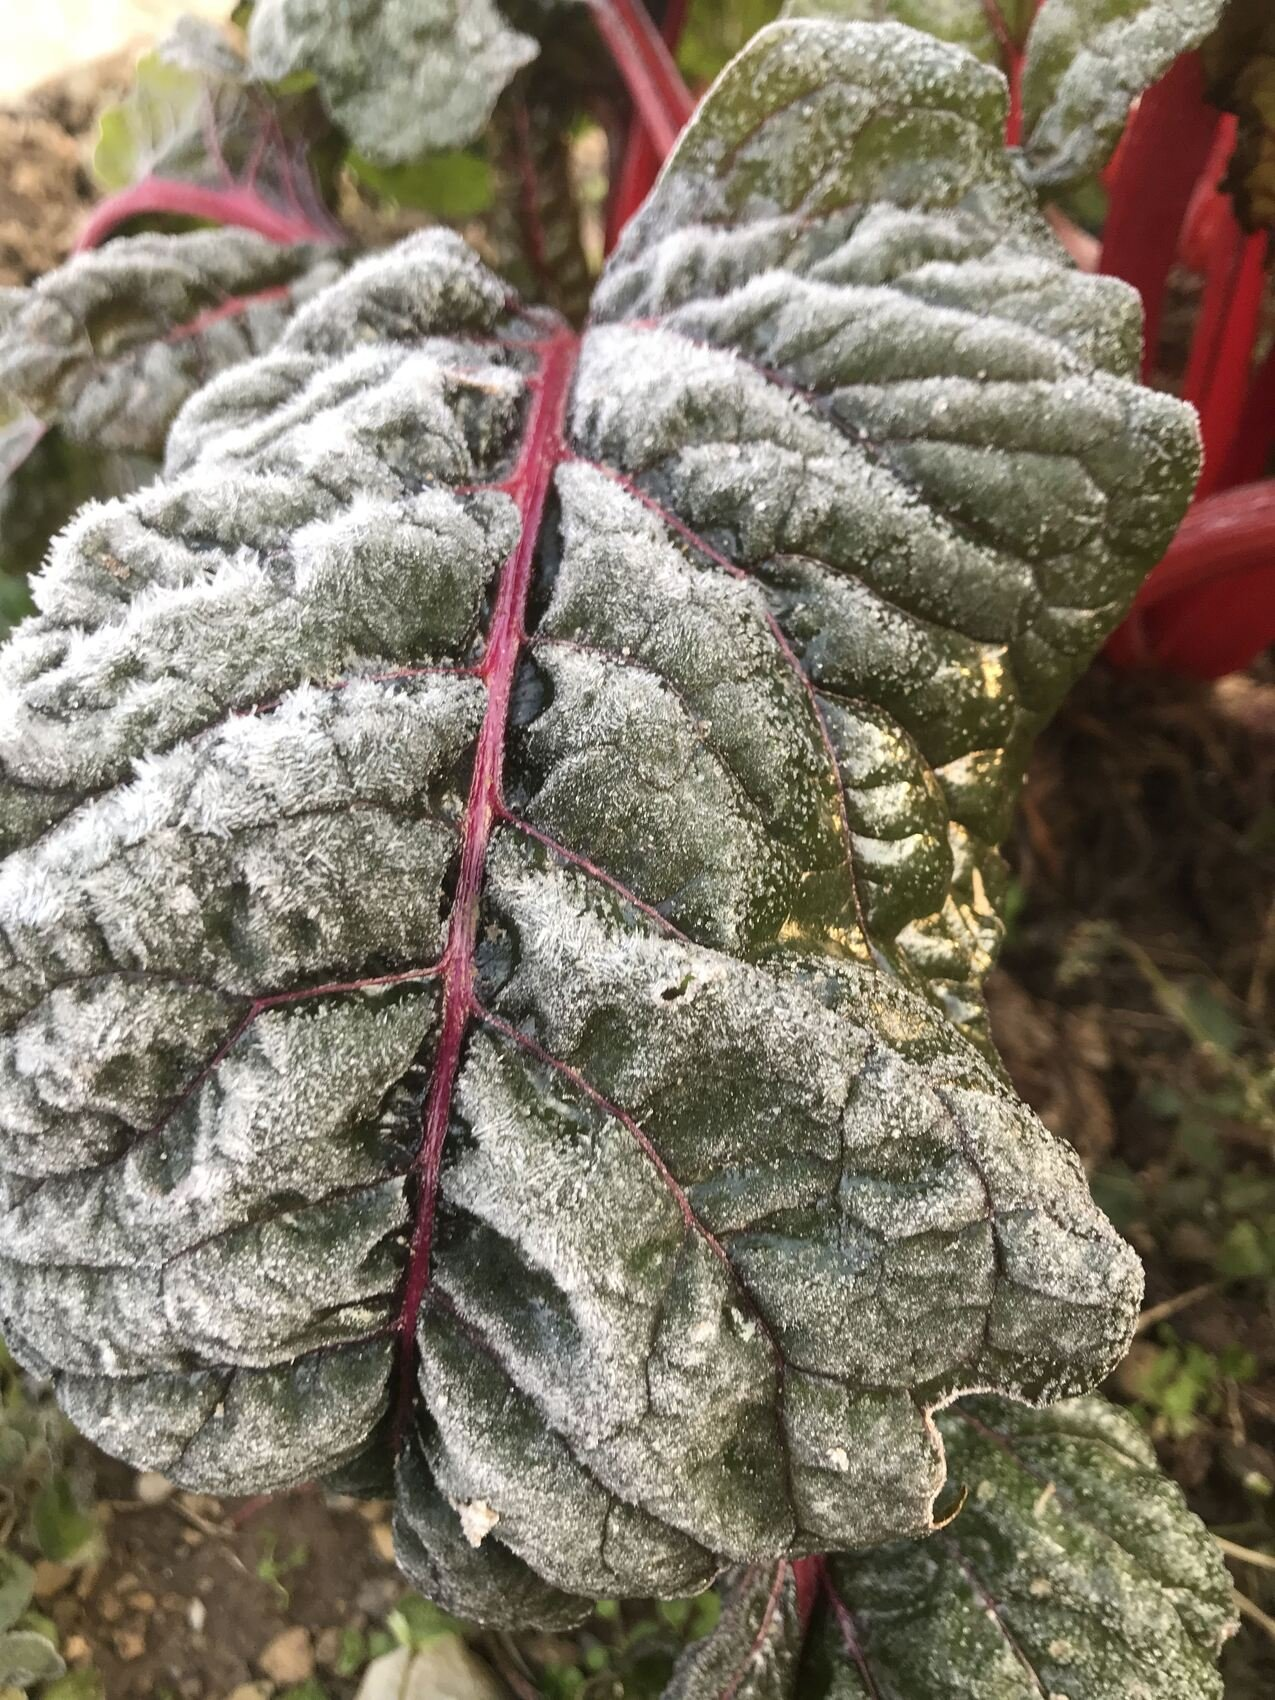 Previous Happening: Frosty Greens + Recipe Chicken Kale Soup